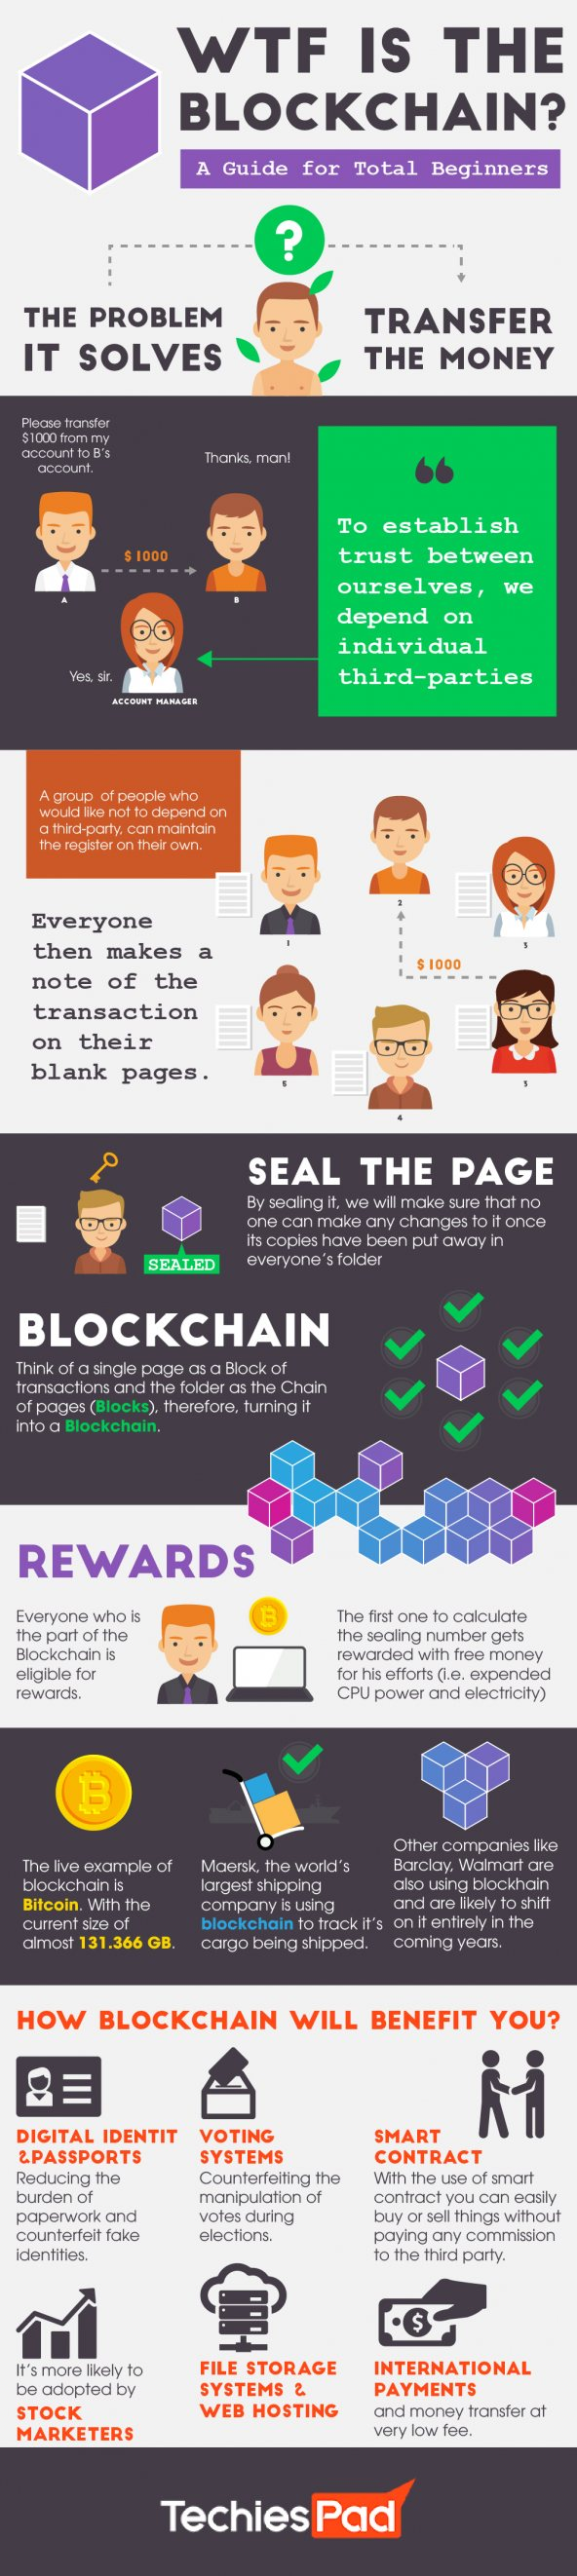 An_Ultimate_Beginner_s_Guide_to_BlockChain_Infographic_592_2644_84